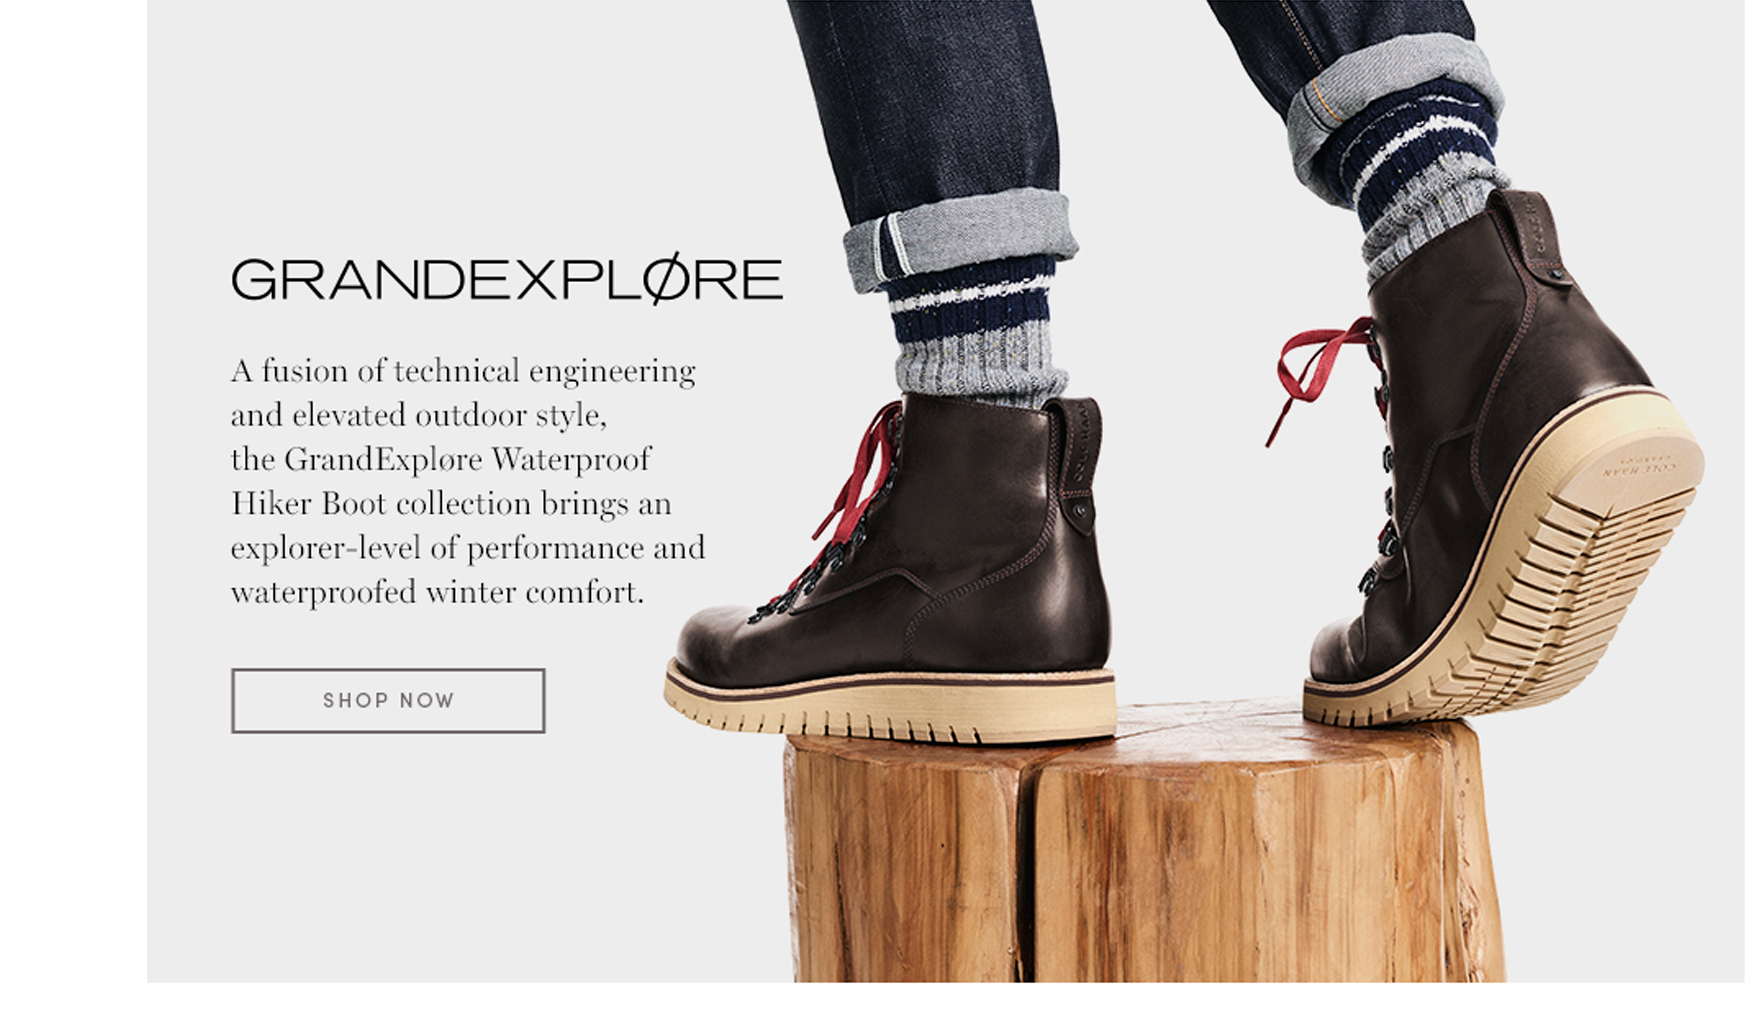 GrandExplore: A fusion of technical engineering and elevated outdoor style, the GrandExplore Waterproof Hiker Boot collection brings an explore-level of performance and waterproofed winter comfort